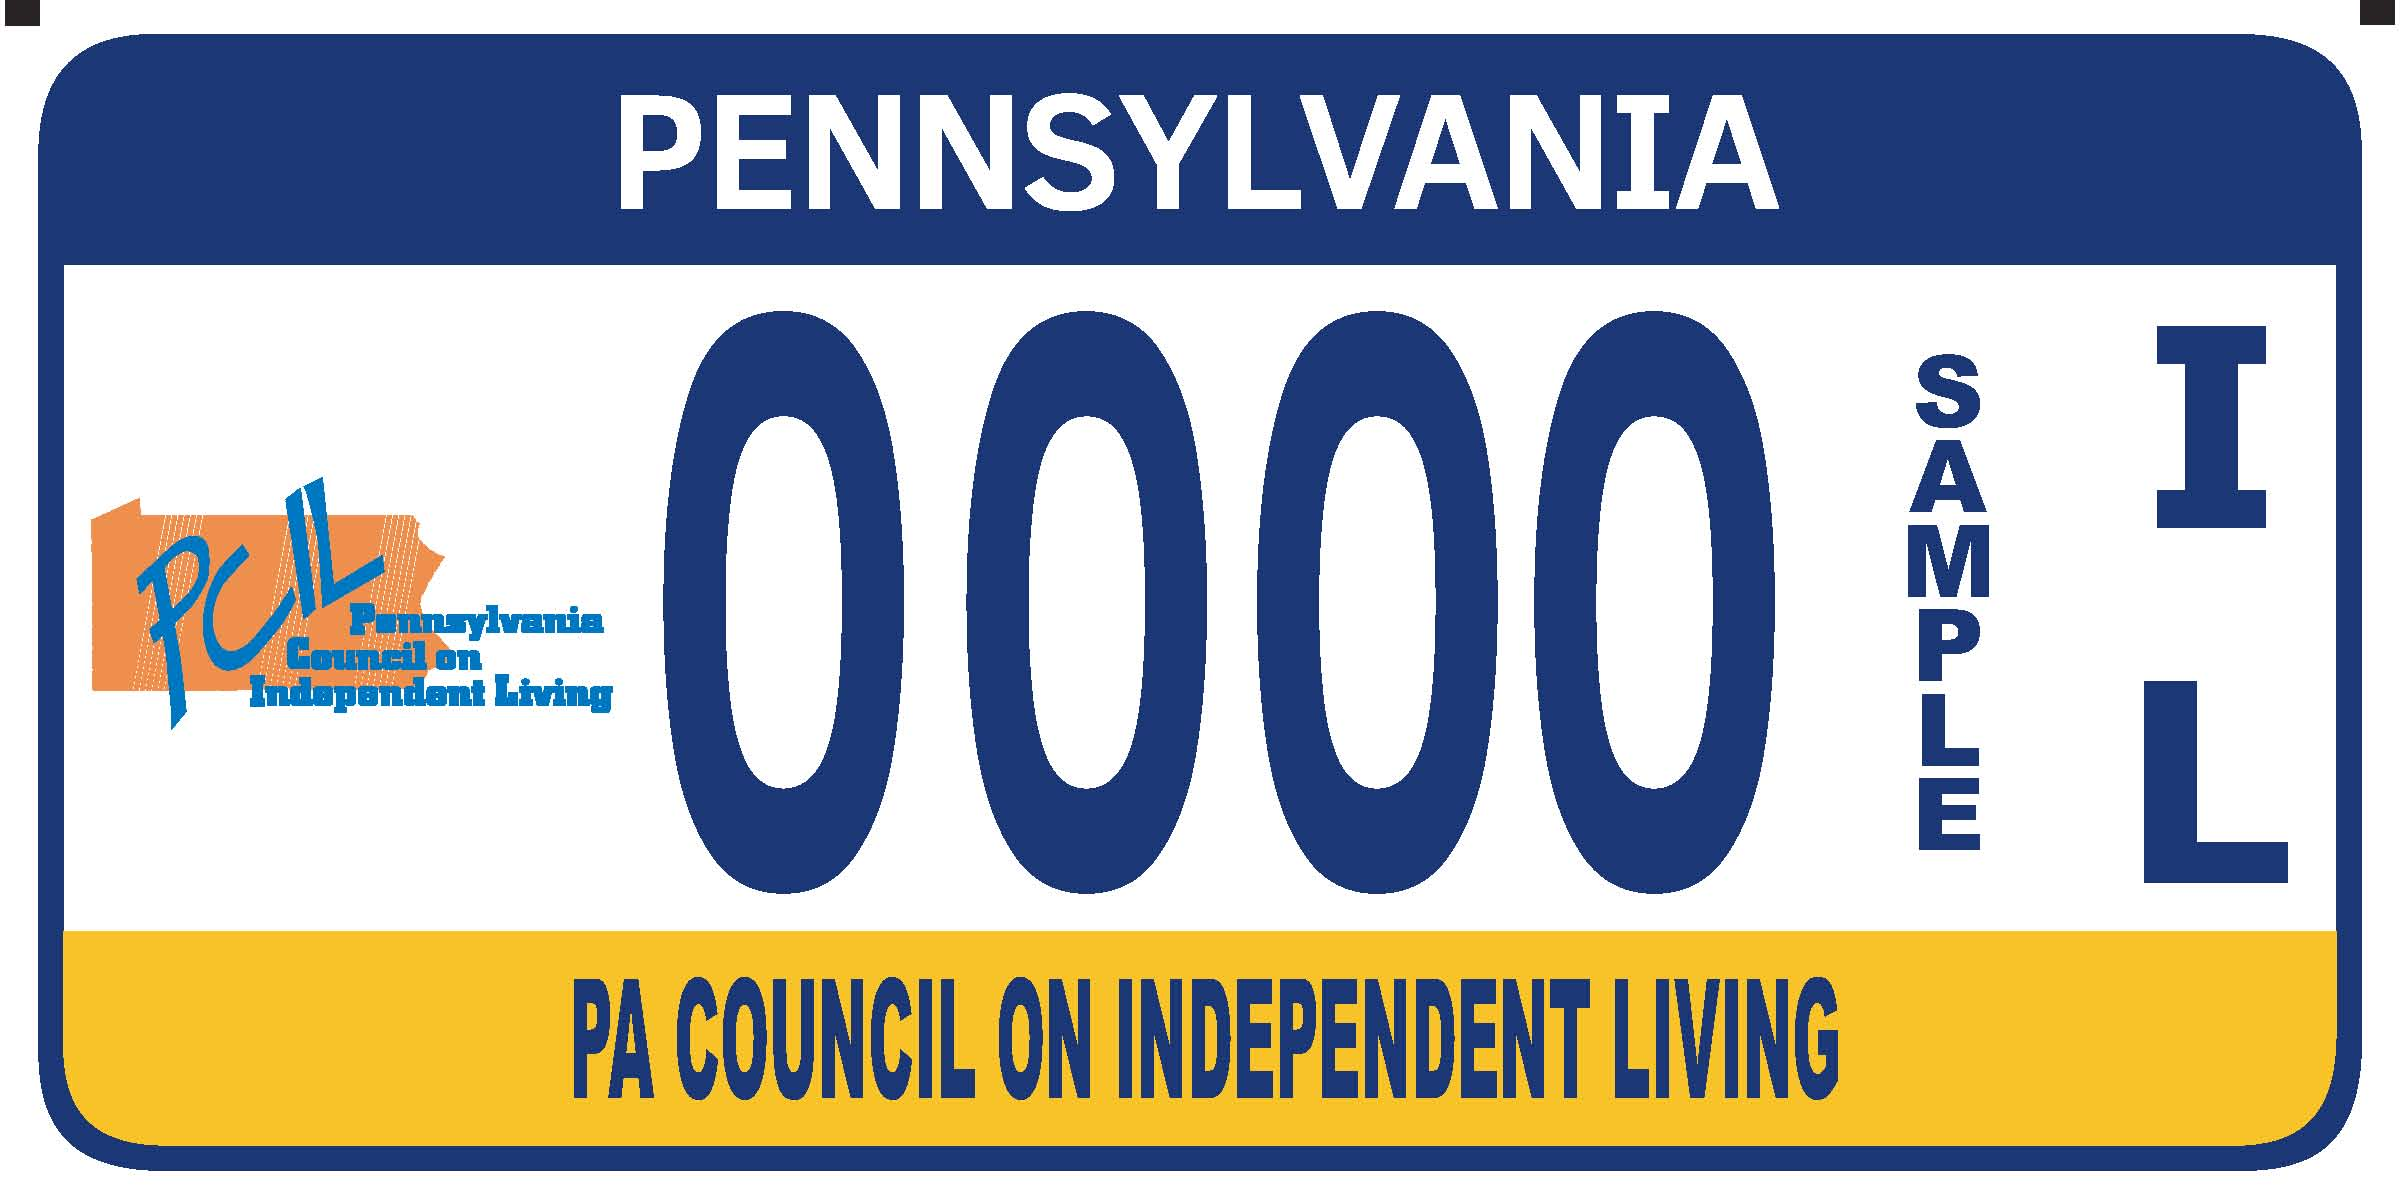 PA Council on Independent Living